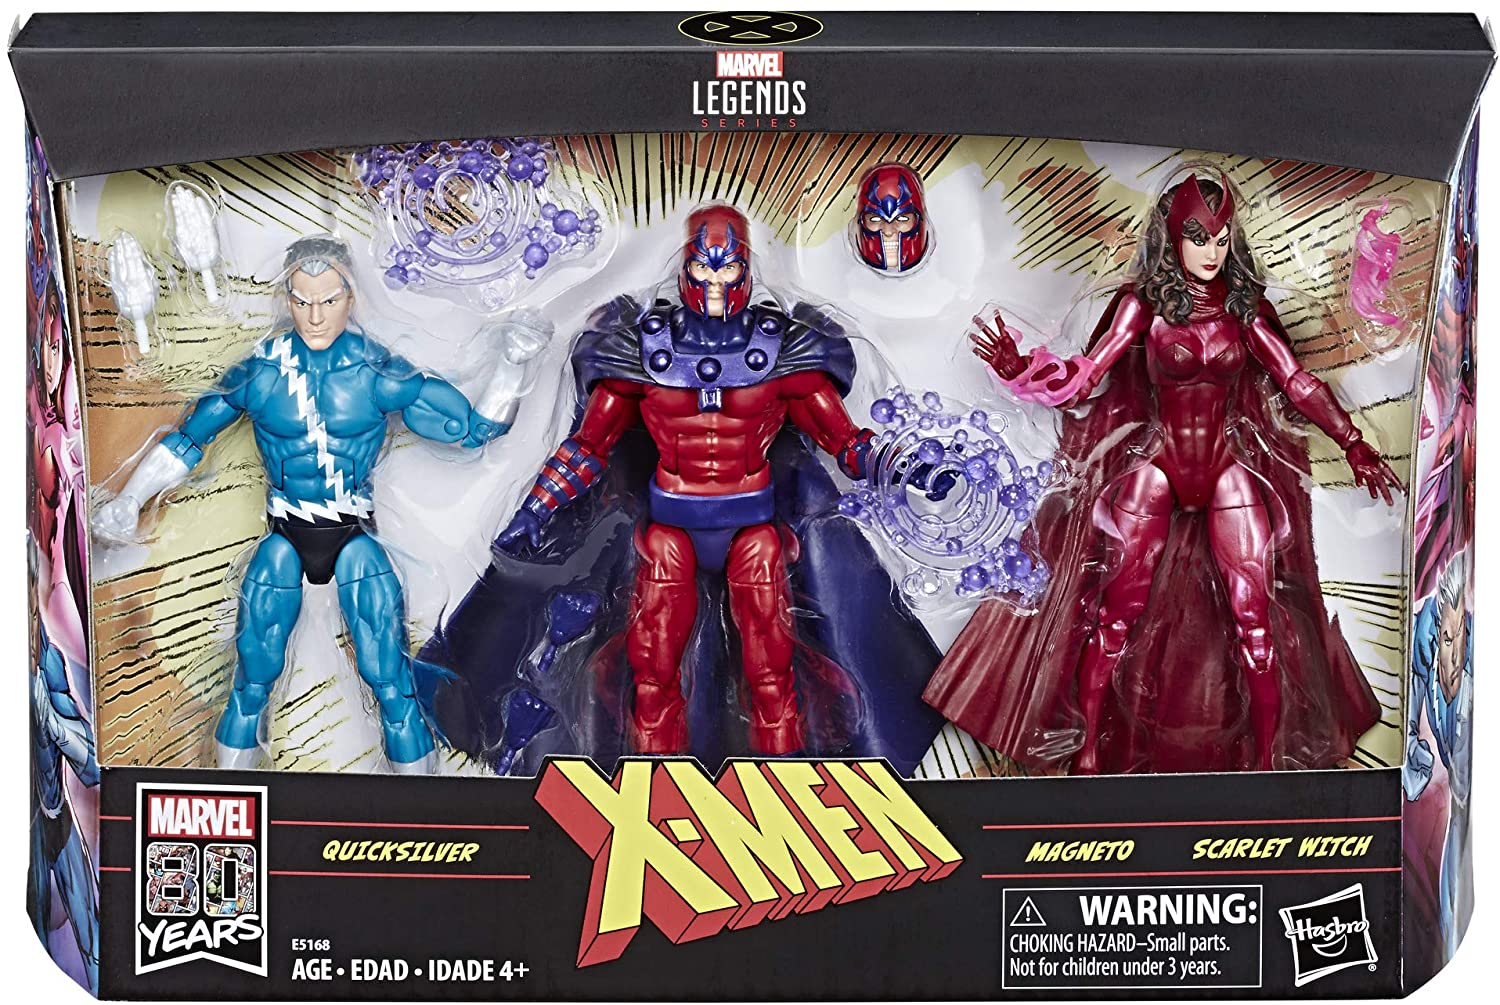 Marvel Legends 80 Aniversario Figuras de 6 Pulgadas 3-Pack de Magneto, Quicksilver y Scarlet Witch Action Figure